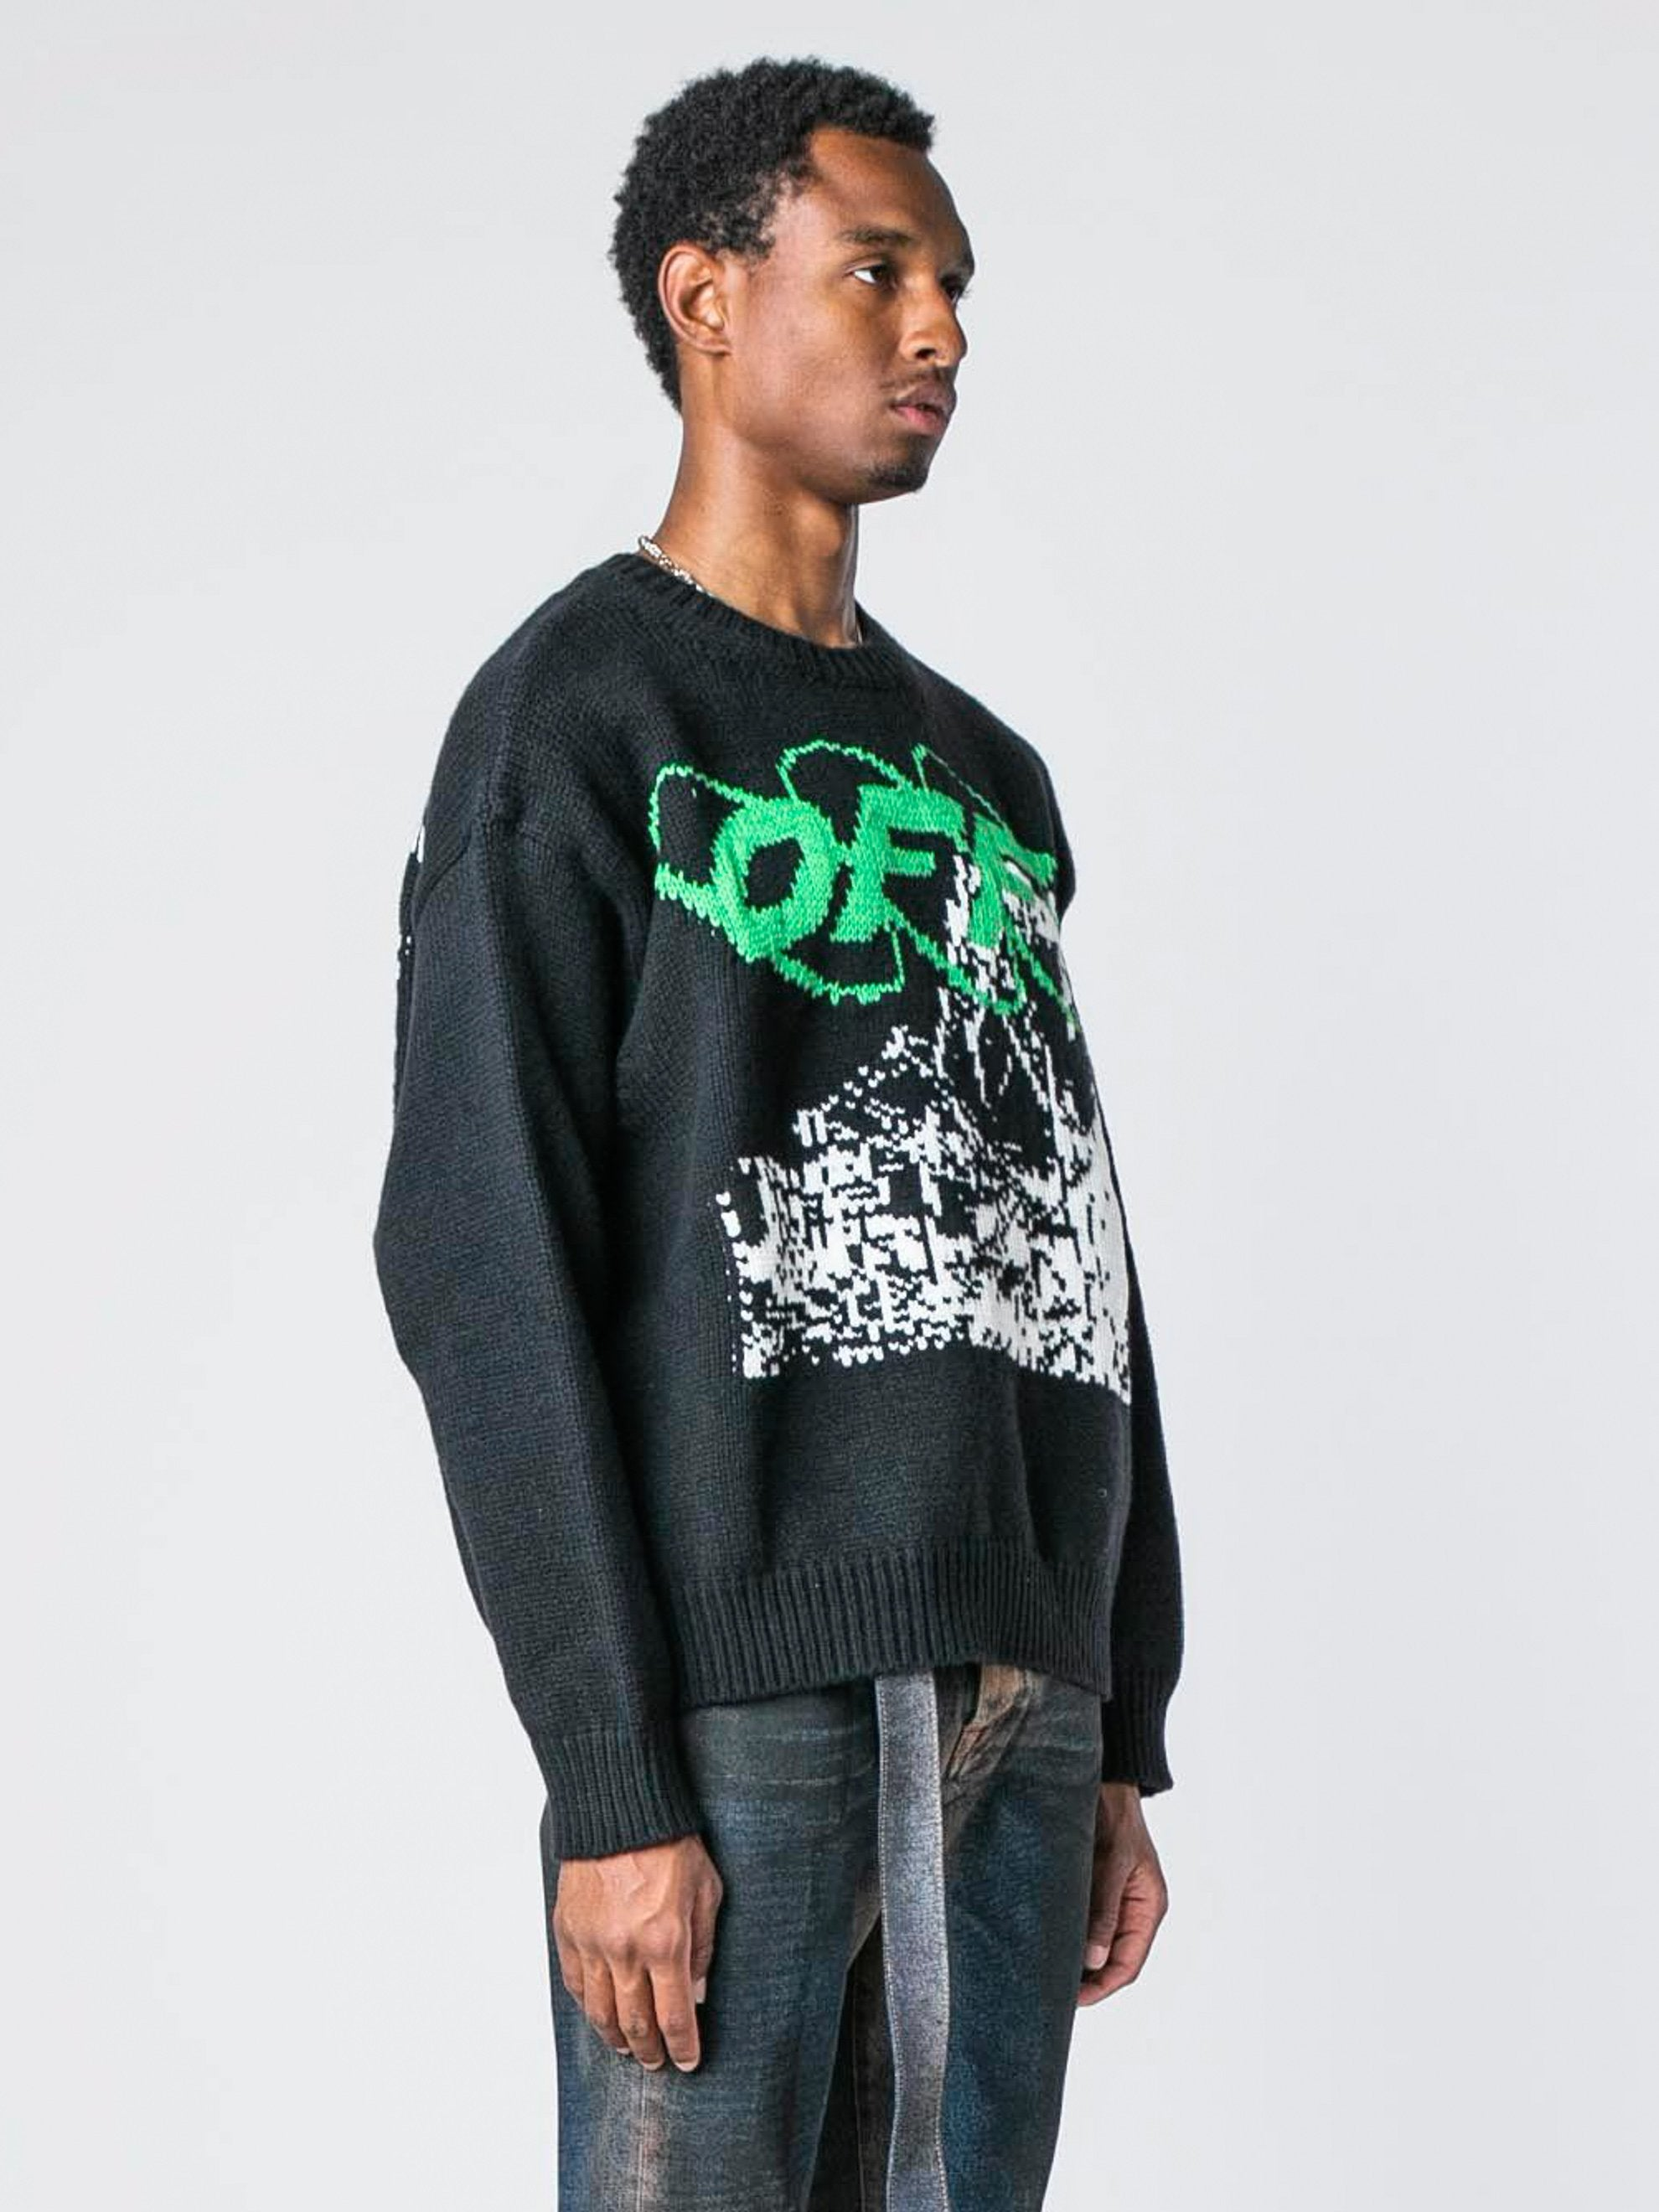 Black / White Ruined Factory Knit Crewneck 4